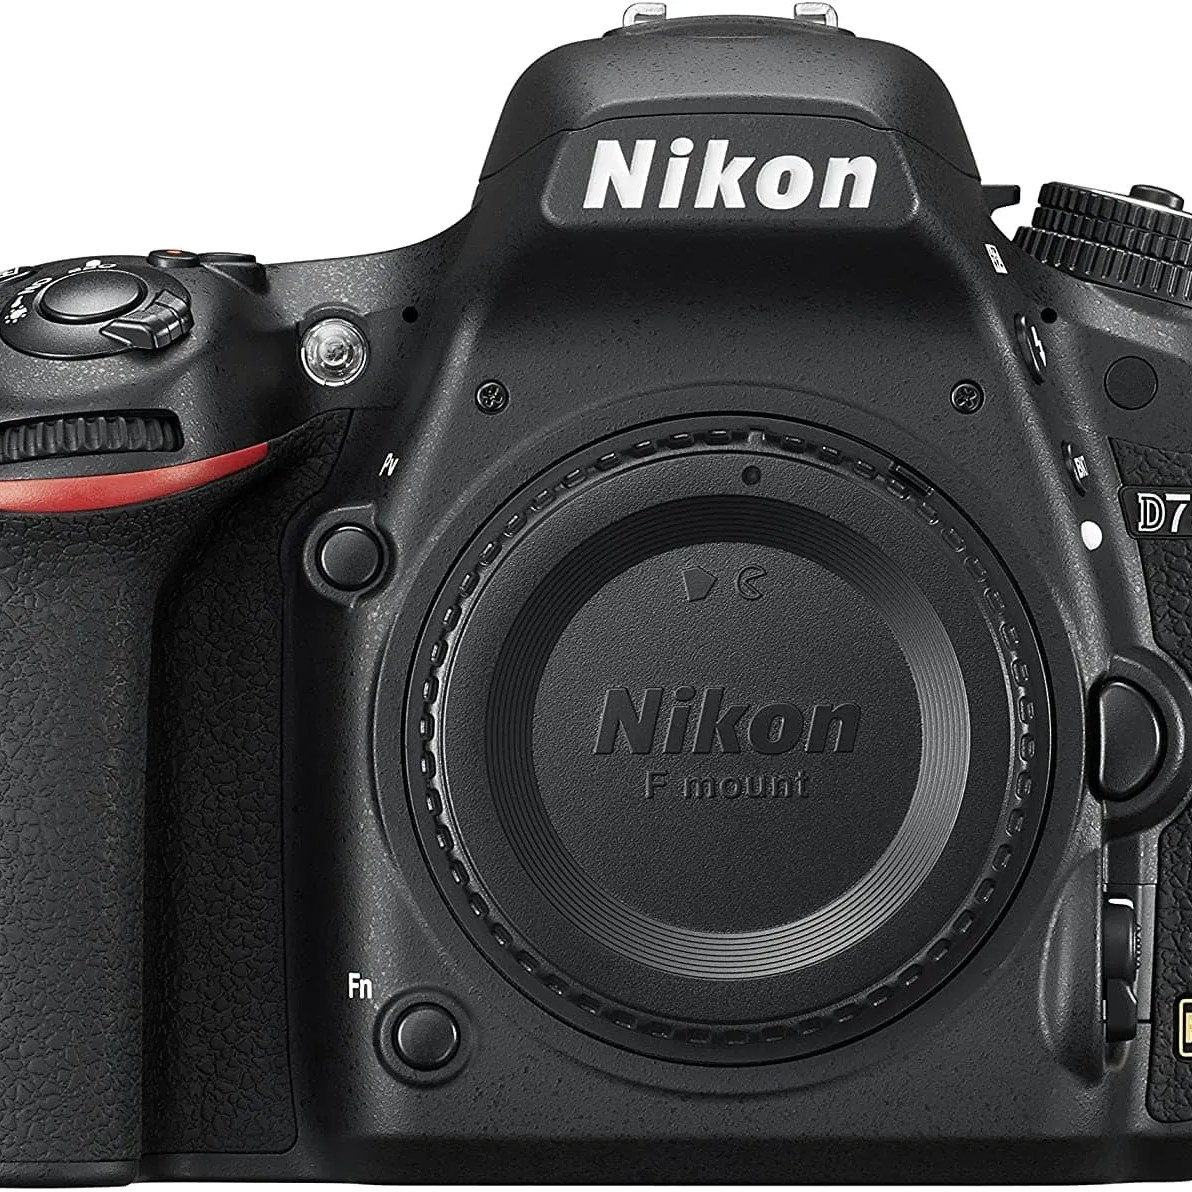 Nikon D750 digital camera body,  the backup camera in our photography gear bag